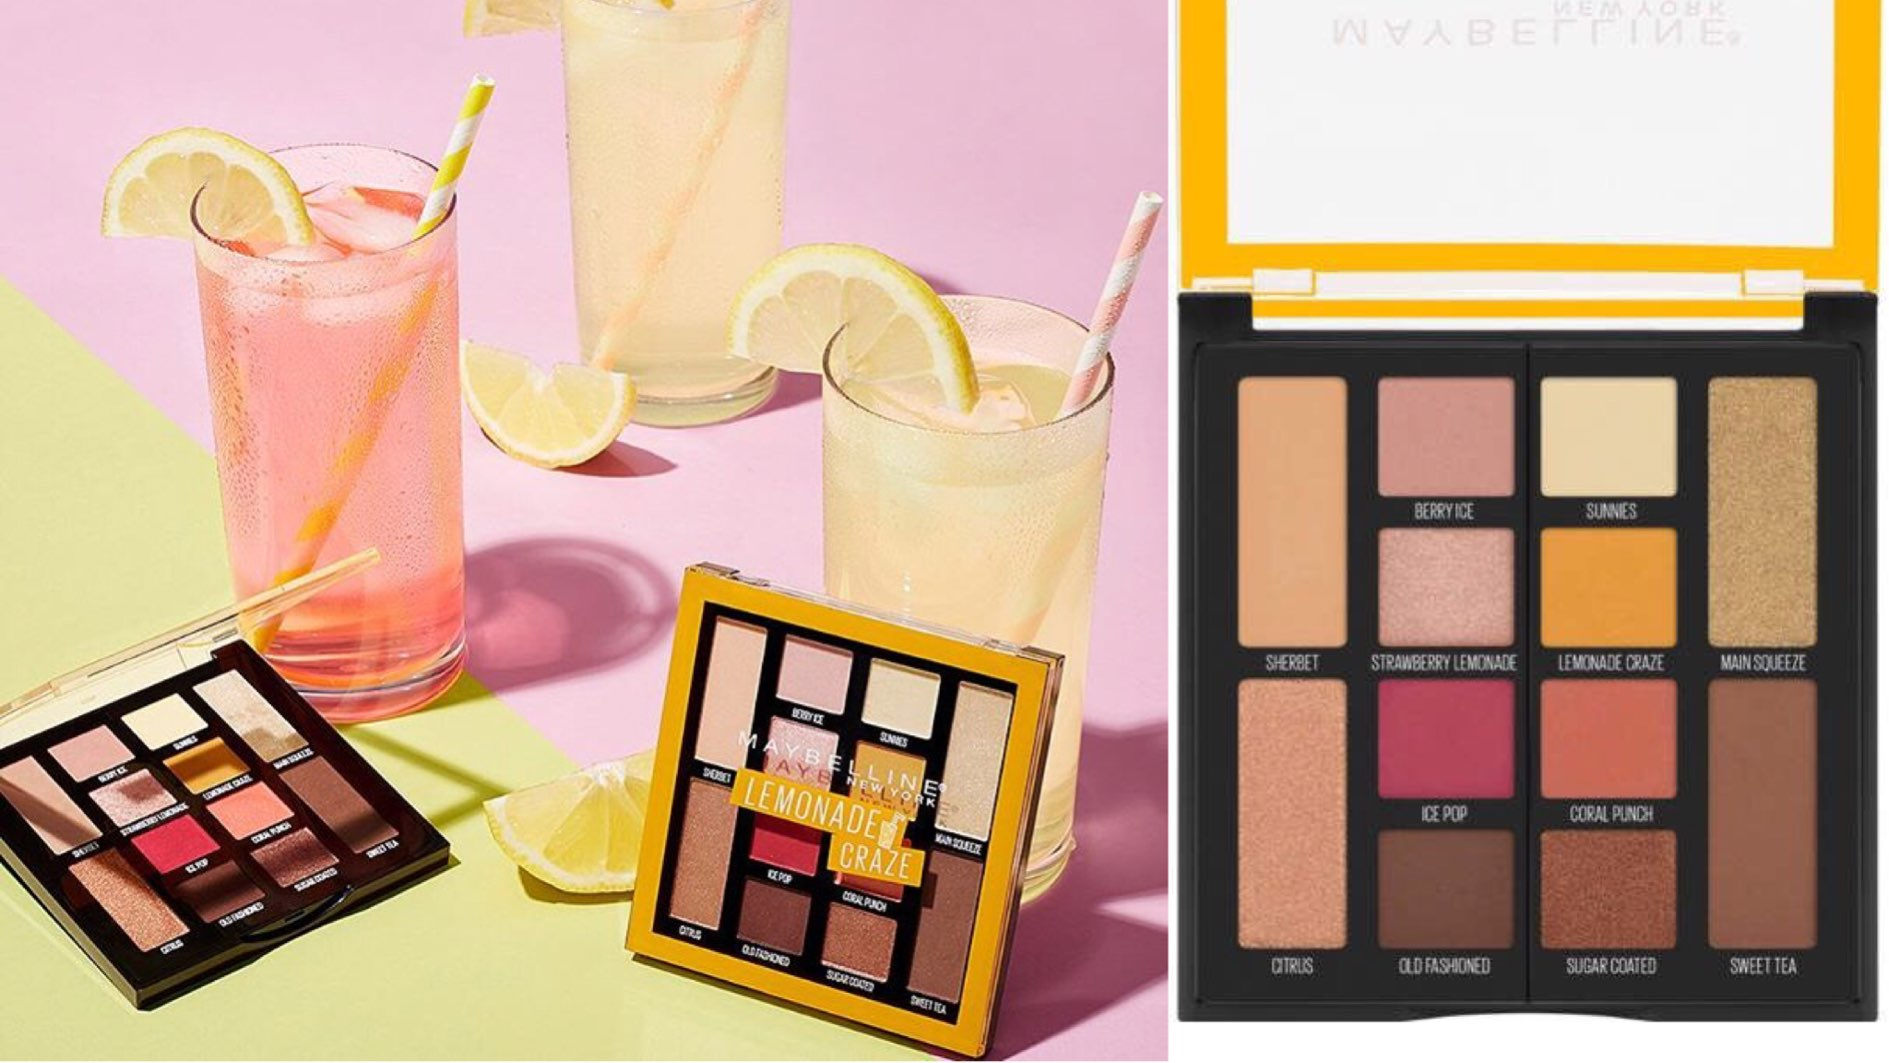 Maybelline lemonade craze eyeshadow palette- Available, Swatches, price| New launch| Dupe of high-end palettes